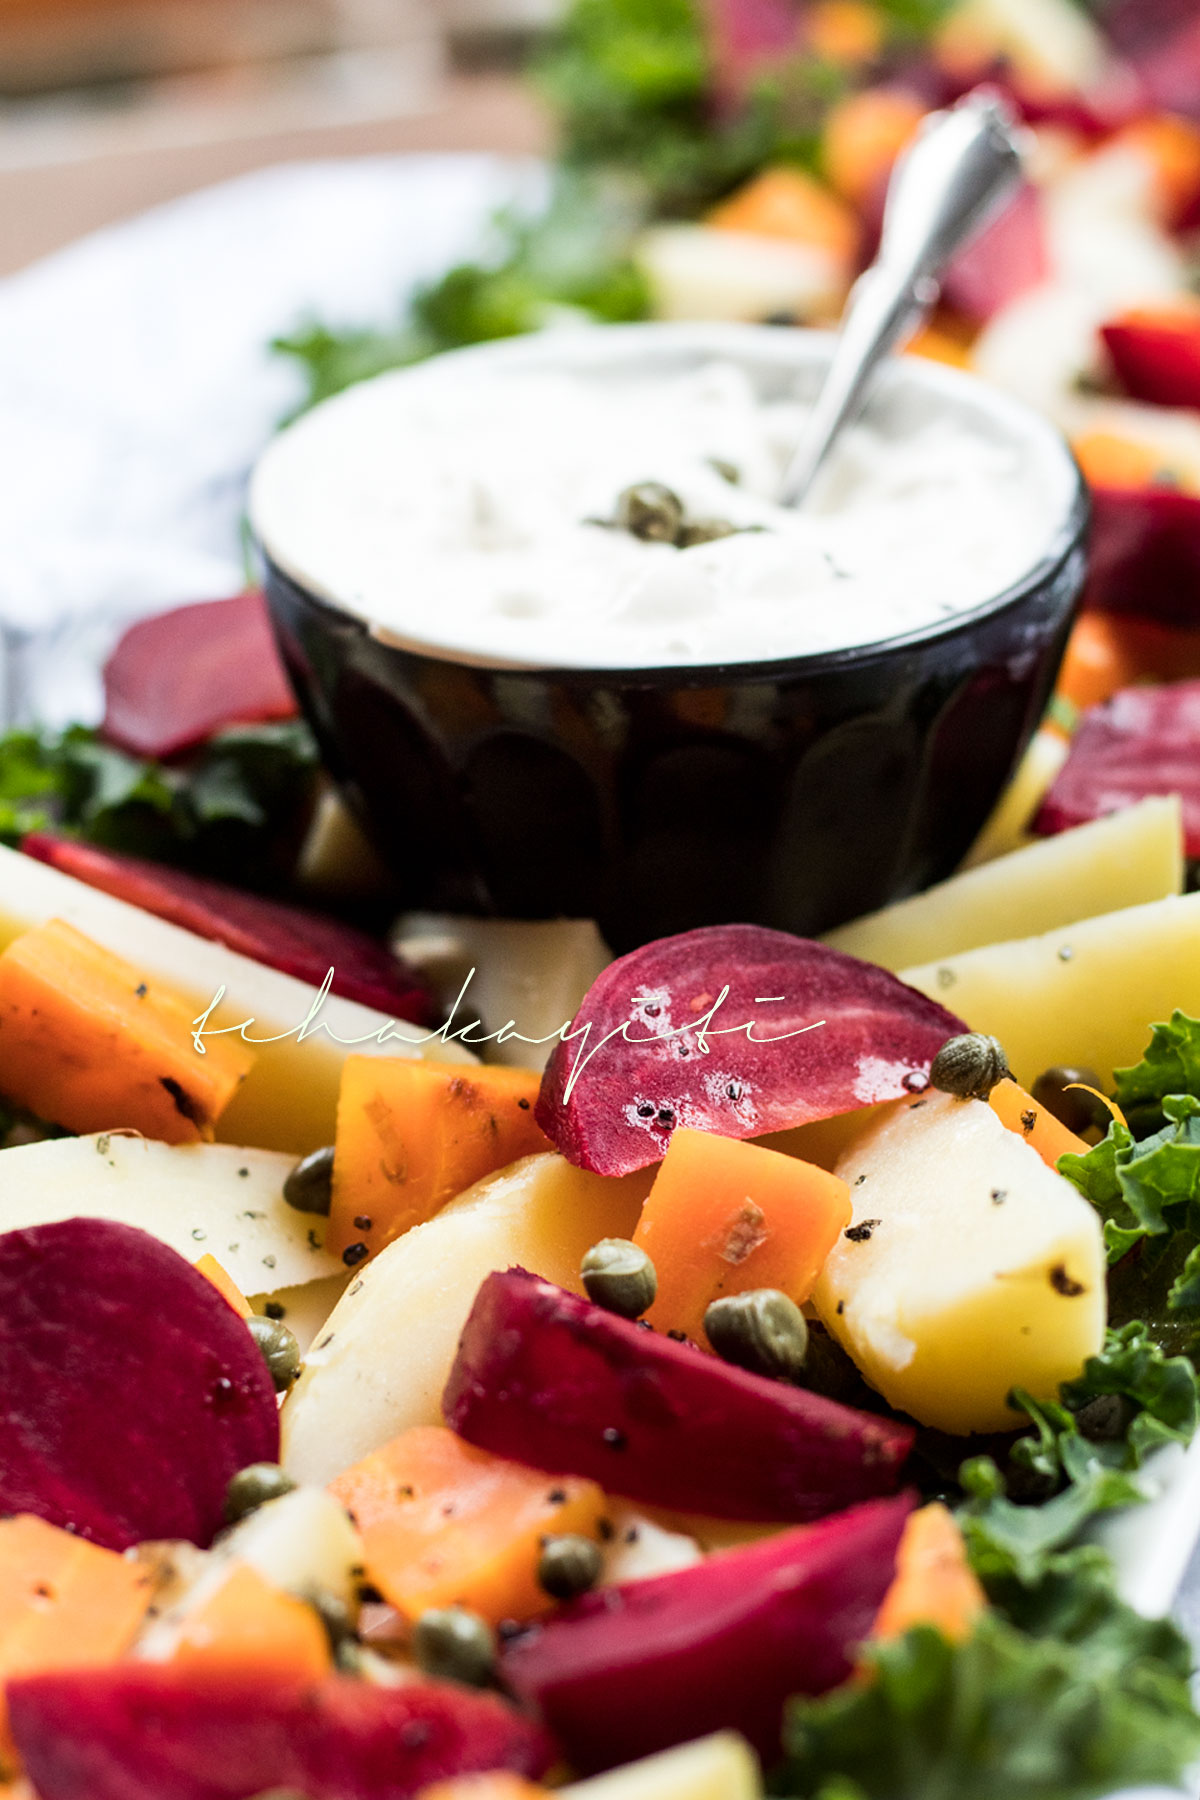 Salade russe is a mixture of potatoes, carrots and beets that are smothered in mayo. A simple and easy salad. | tchakayiti.com